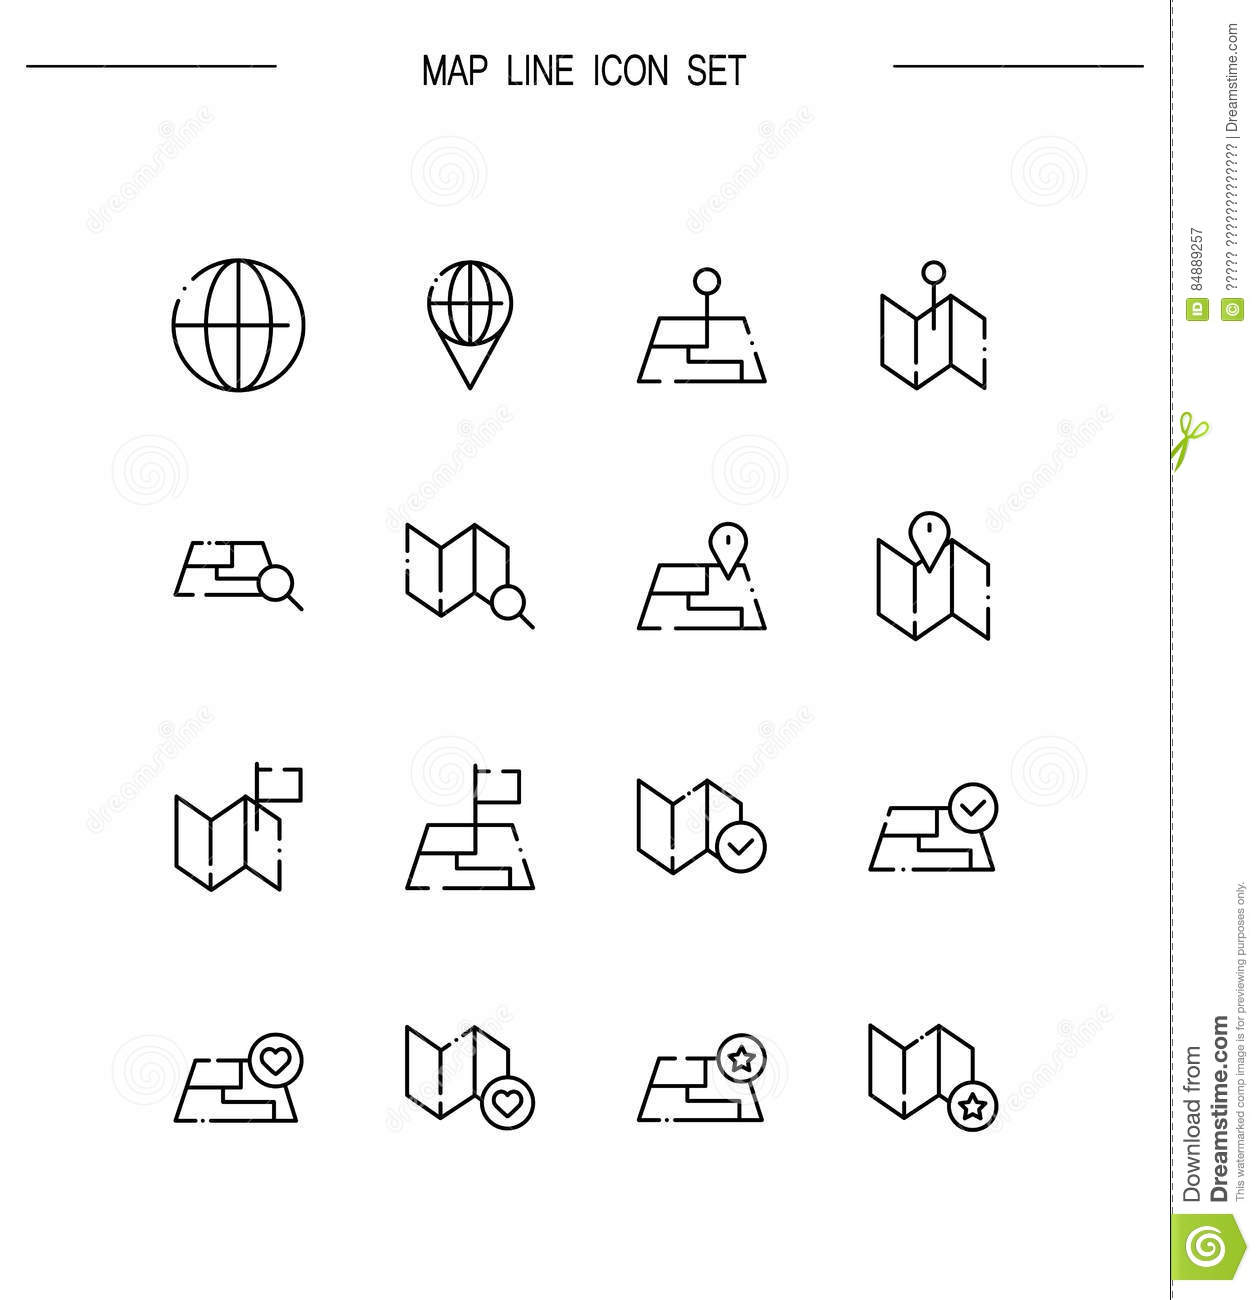 Map Icon Set Stock Vector Illustration Of Road Find 84889257